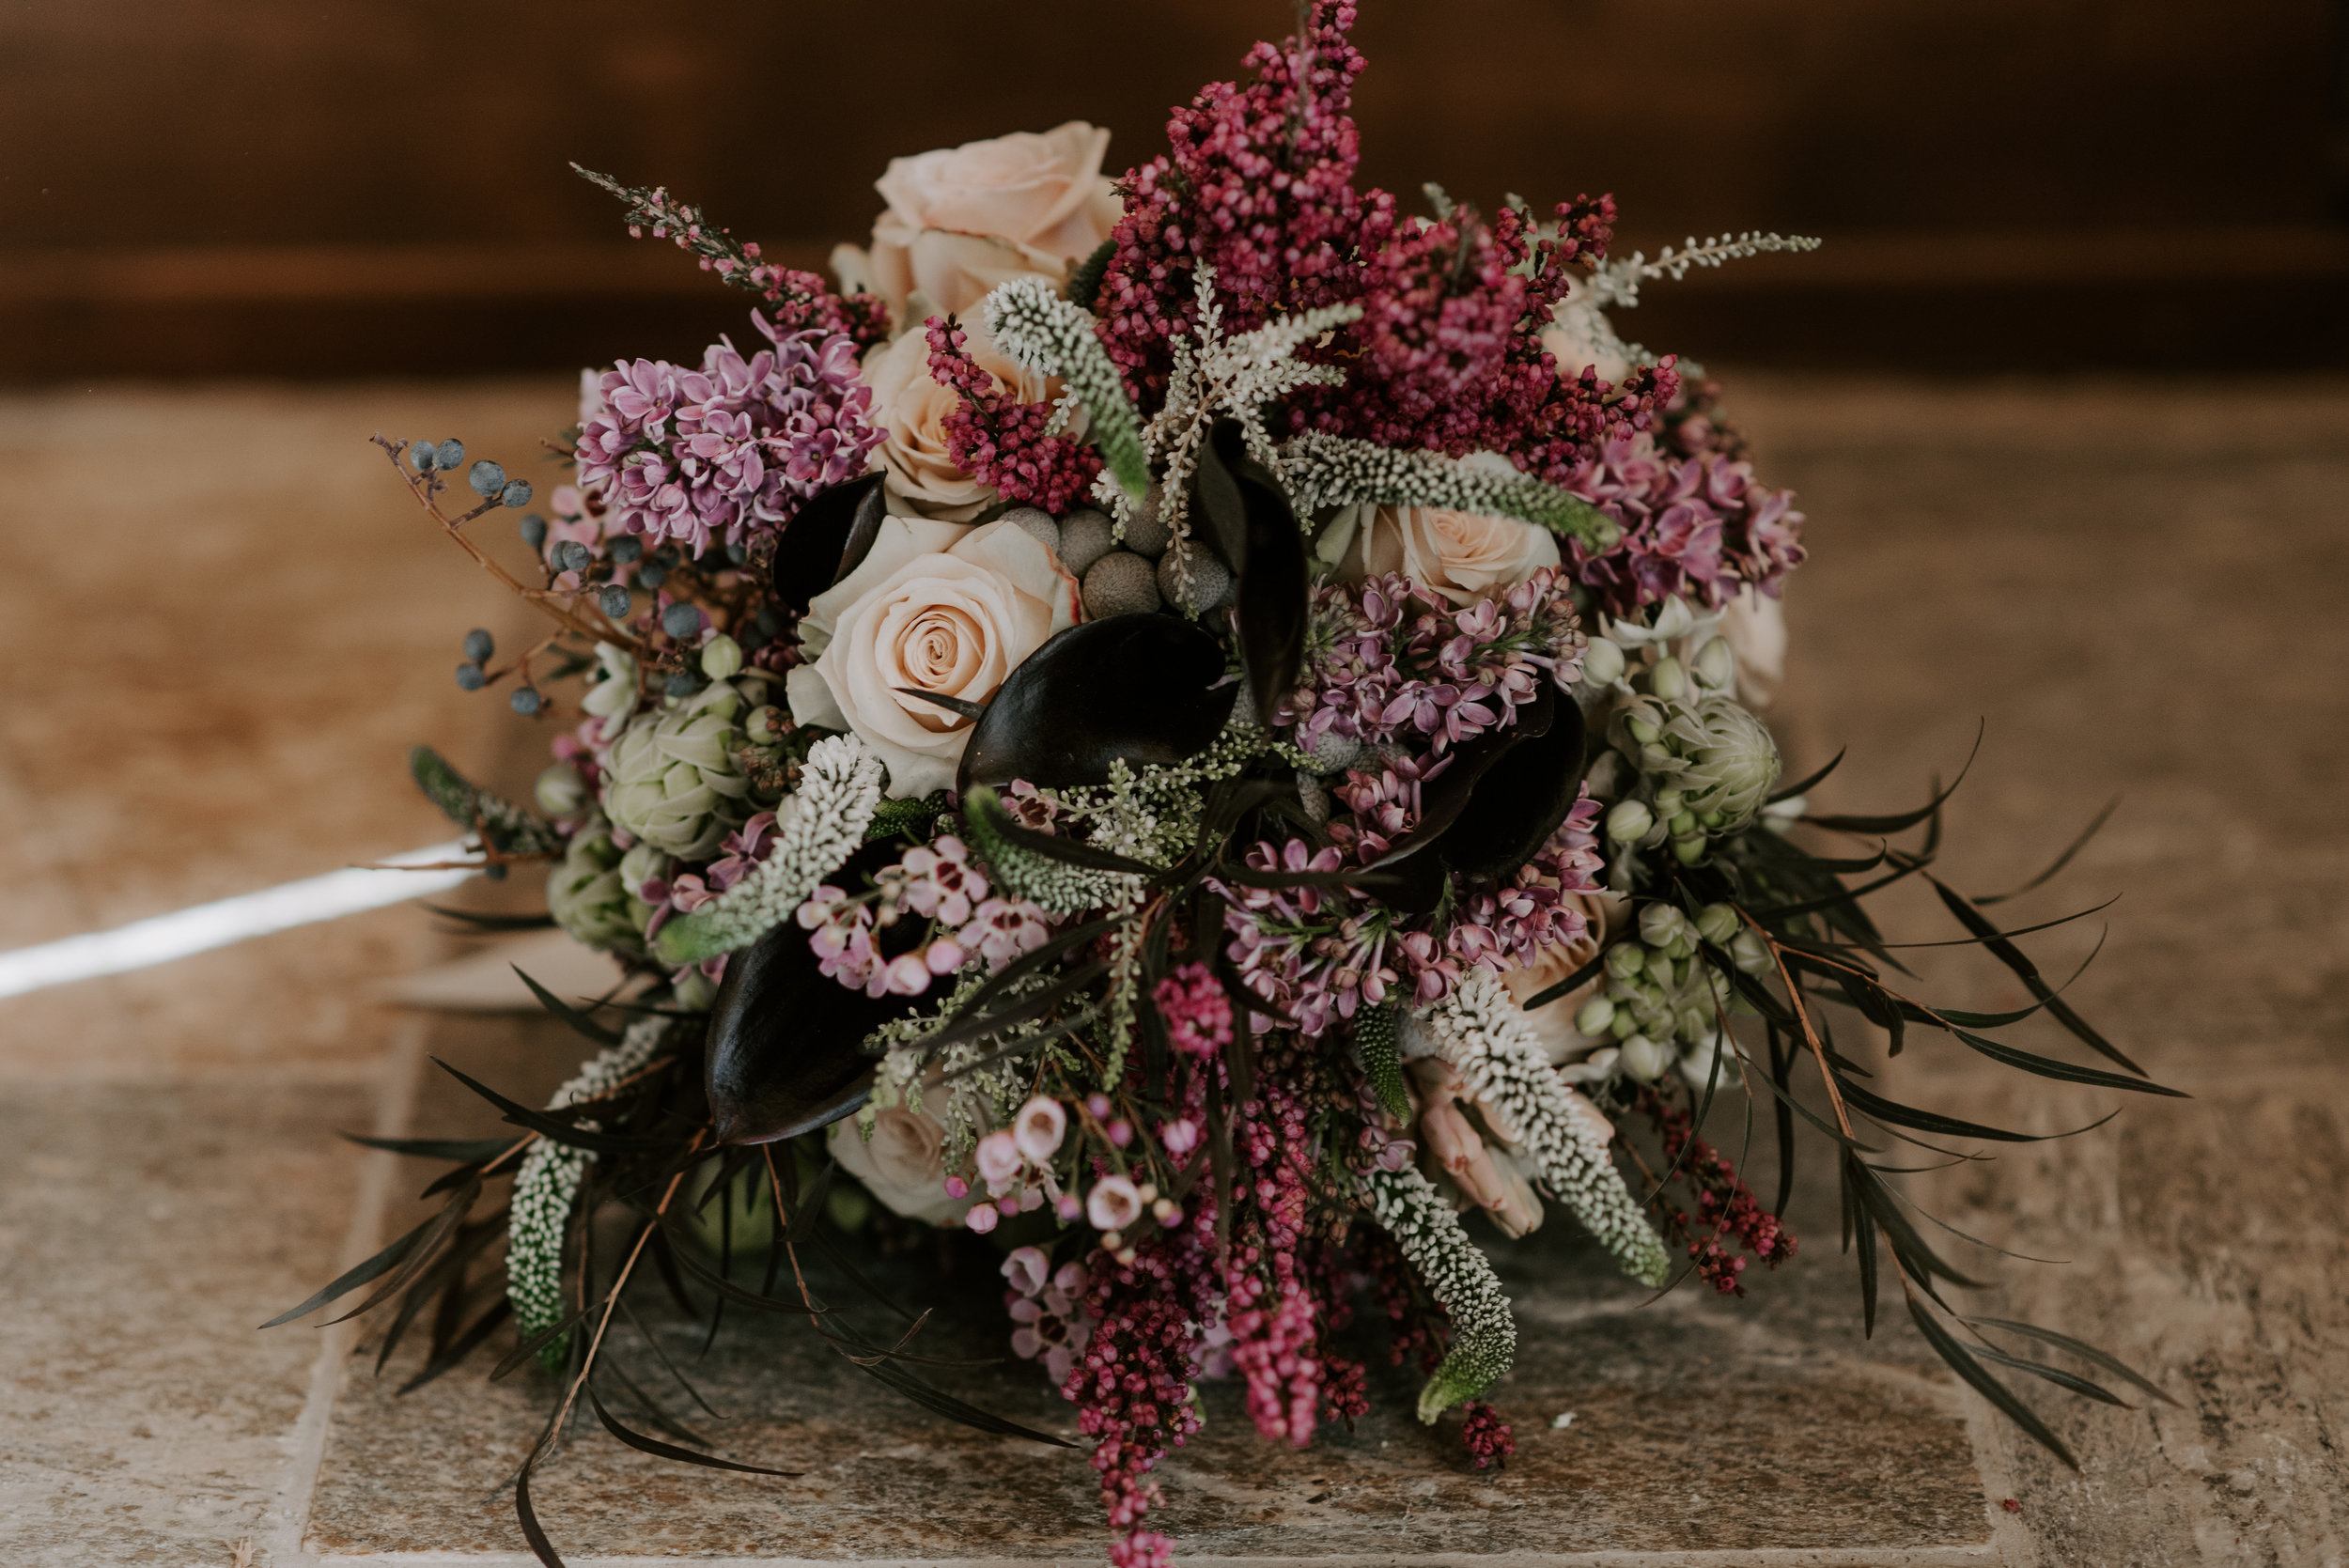 Woodland Breckenridge in Colorado wedding bouquet for an elopement at Sapphire Point.